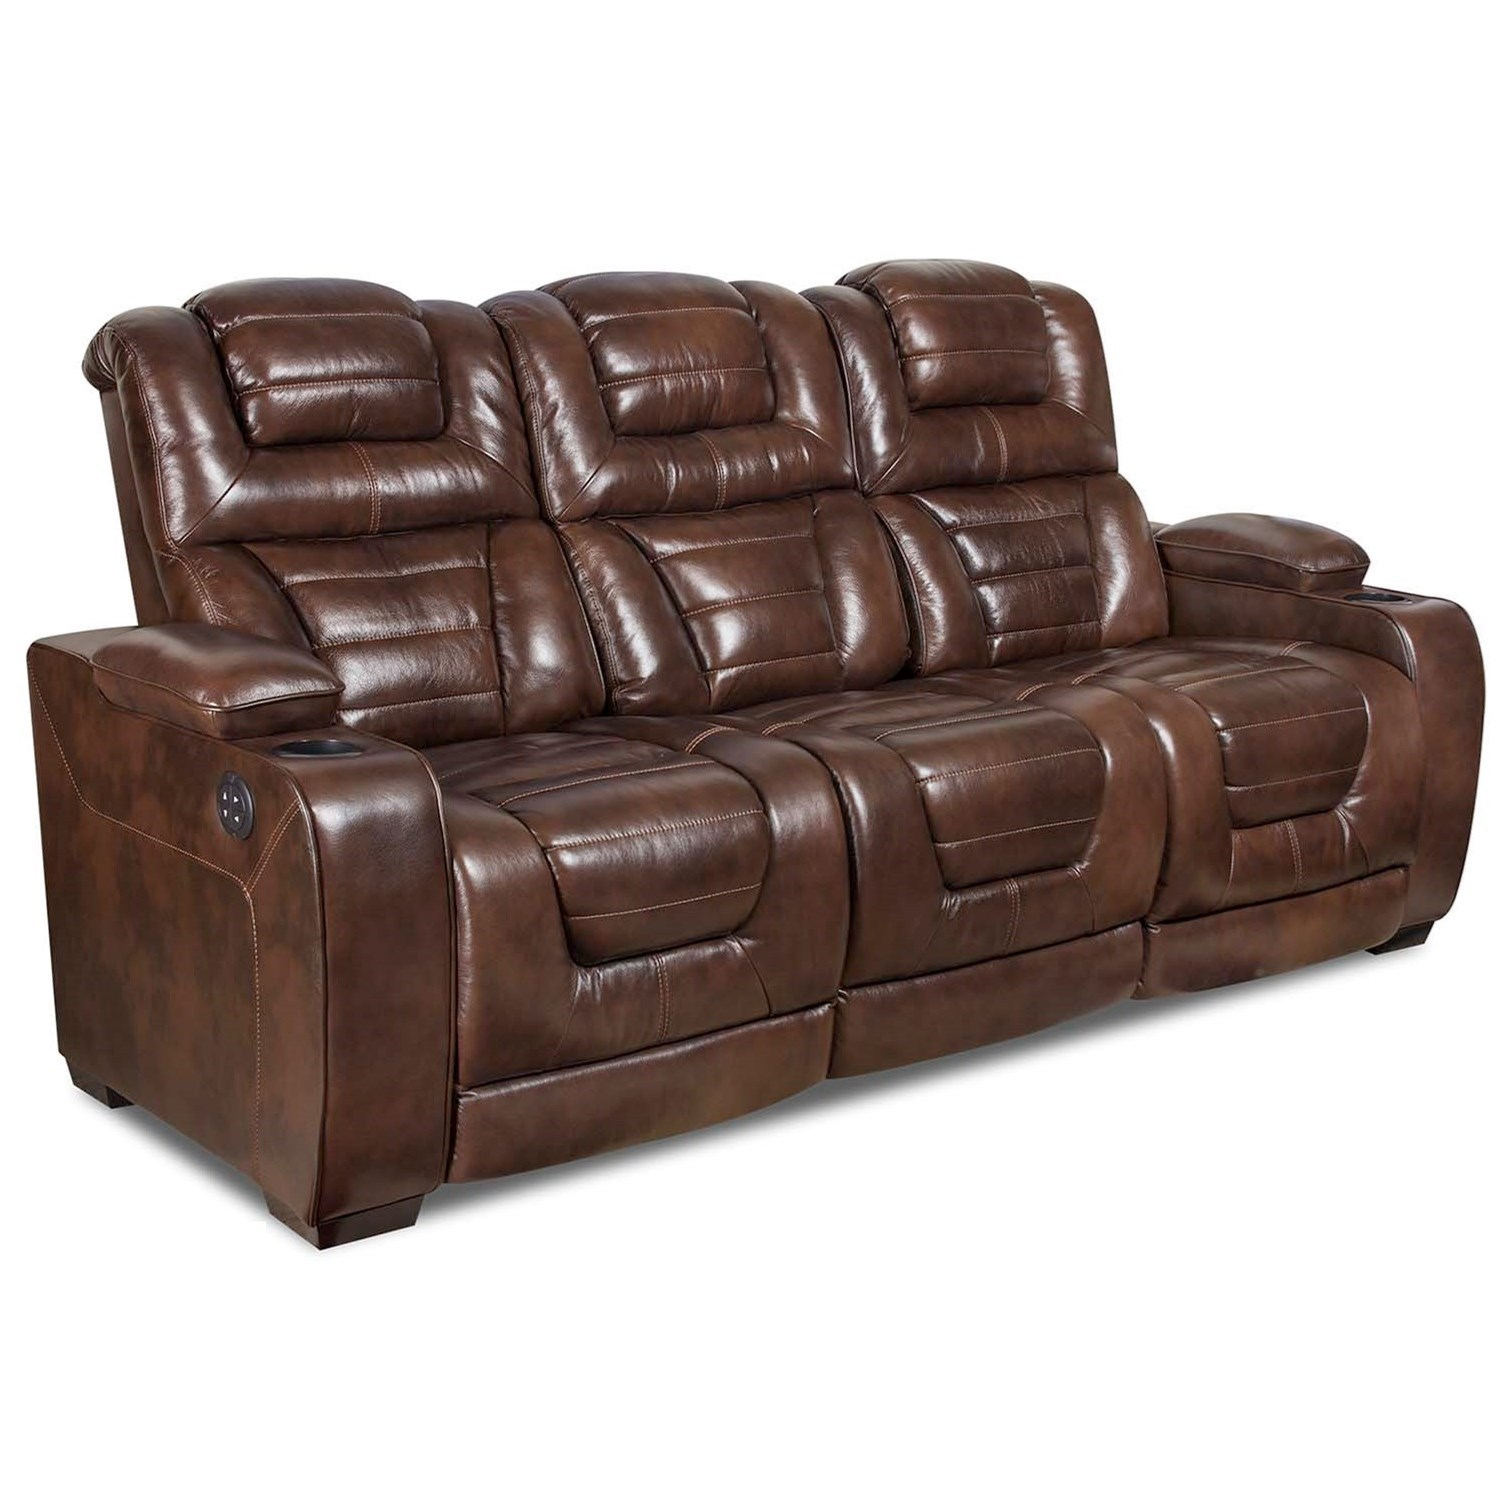 corinthian mead sectional sofa cheap contemporary leather sofas uk desert chocolate 73901 39hr power headrest